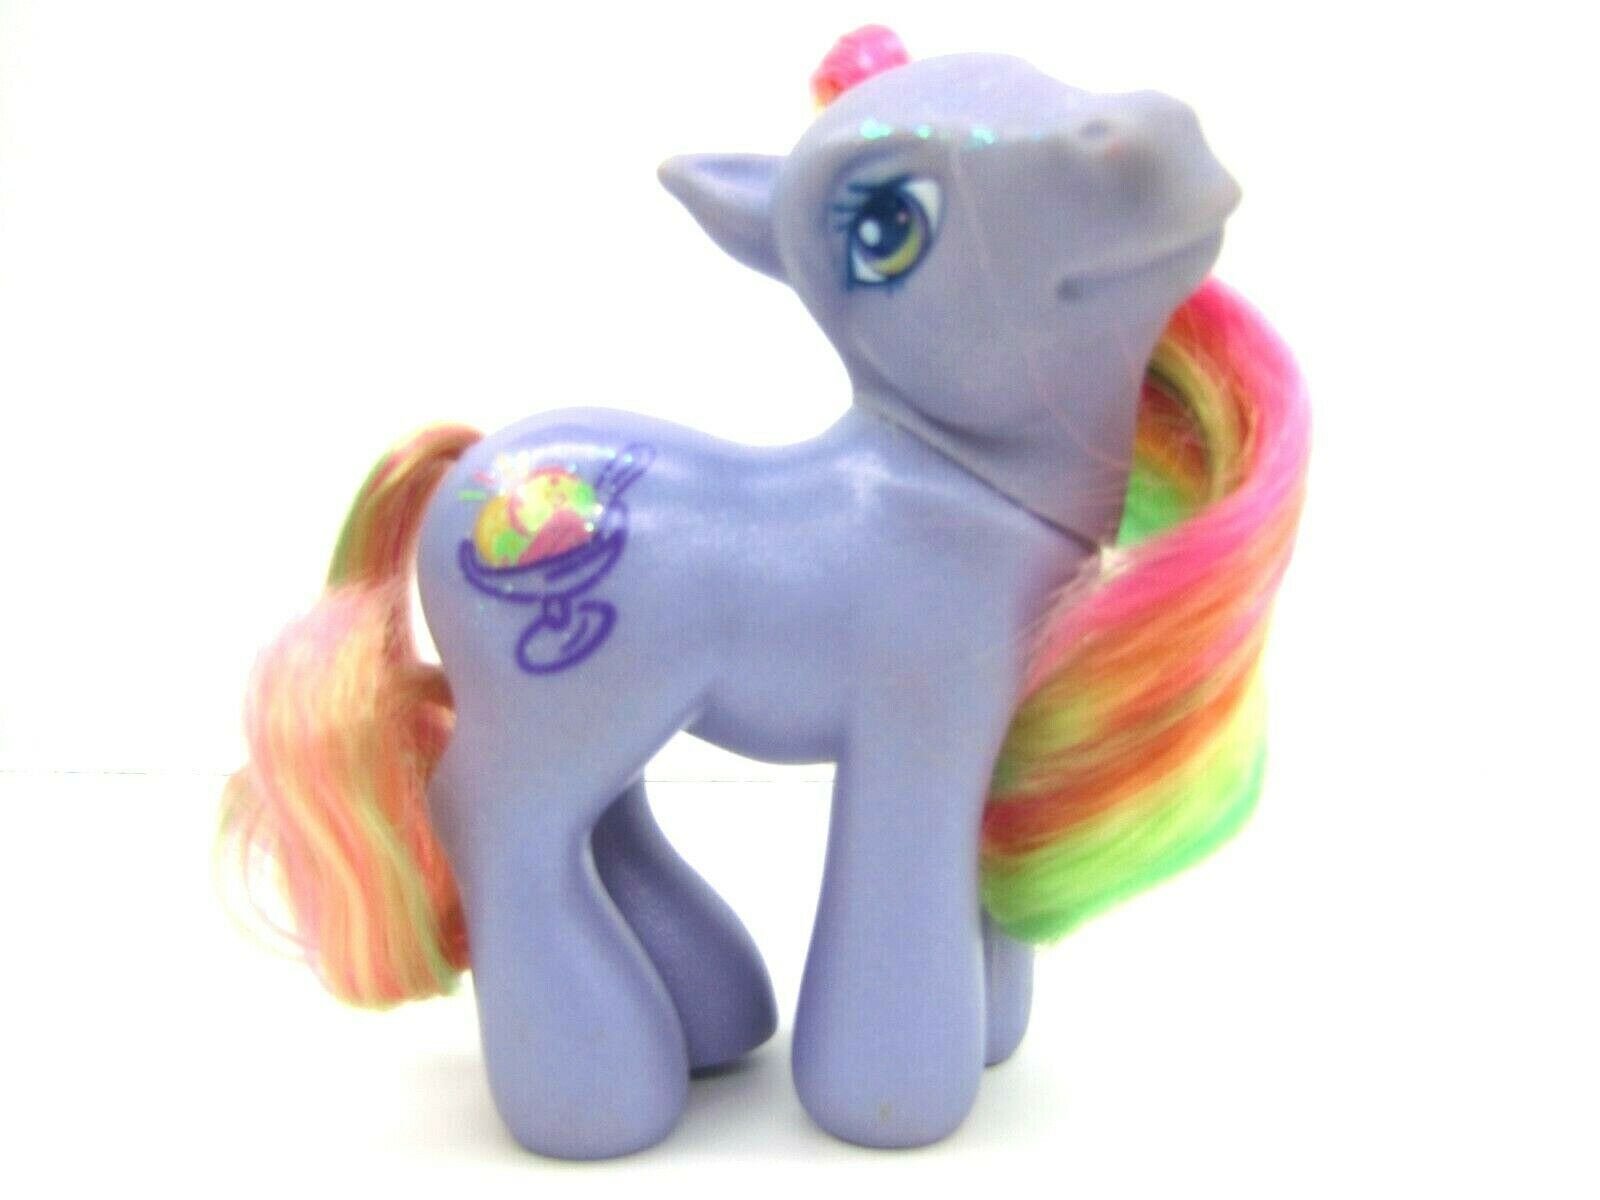 2004 My Little Pony Generation 3 Sparkle Pony RAINBOW SWIRL Very NICE